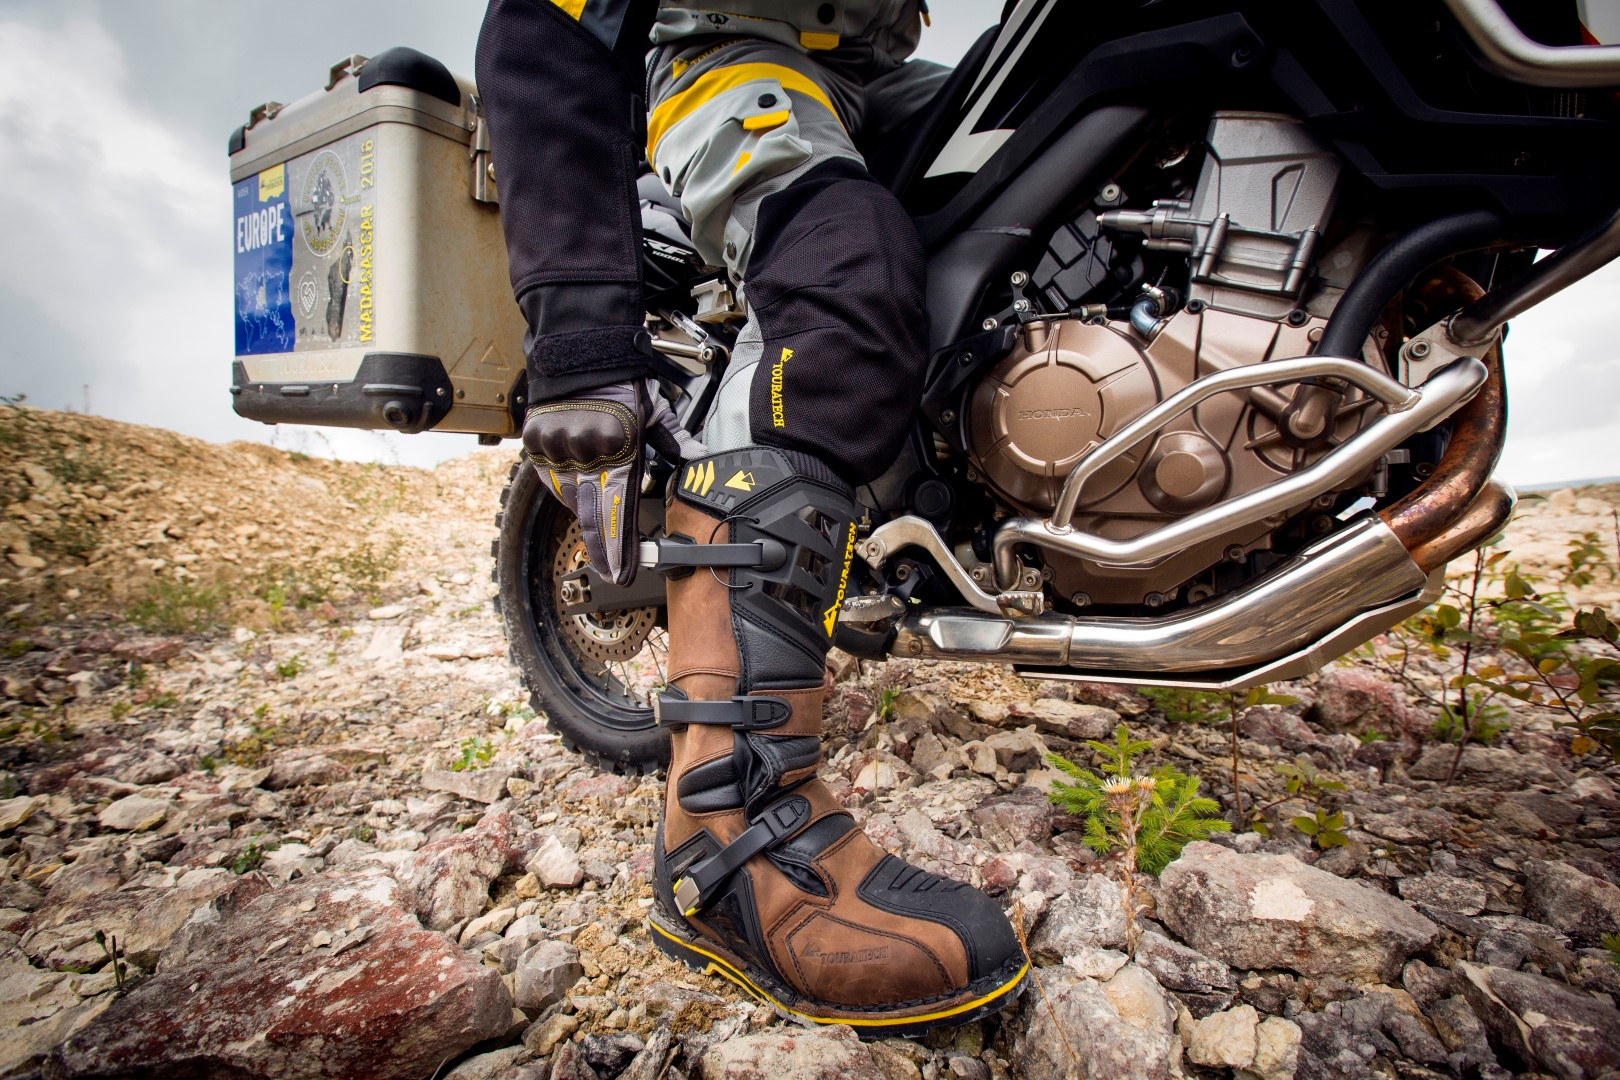 Botas Touratech Destino Adventure, fotos